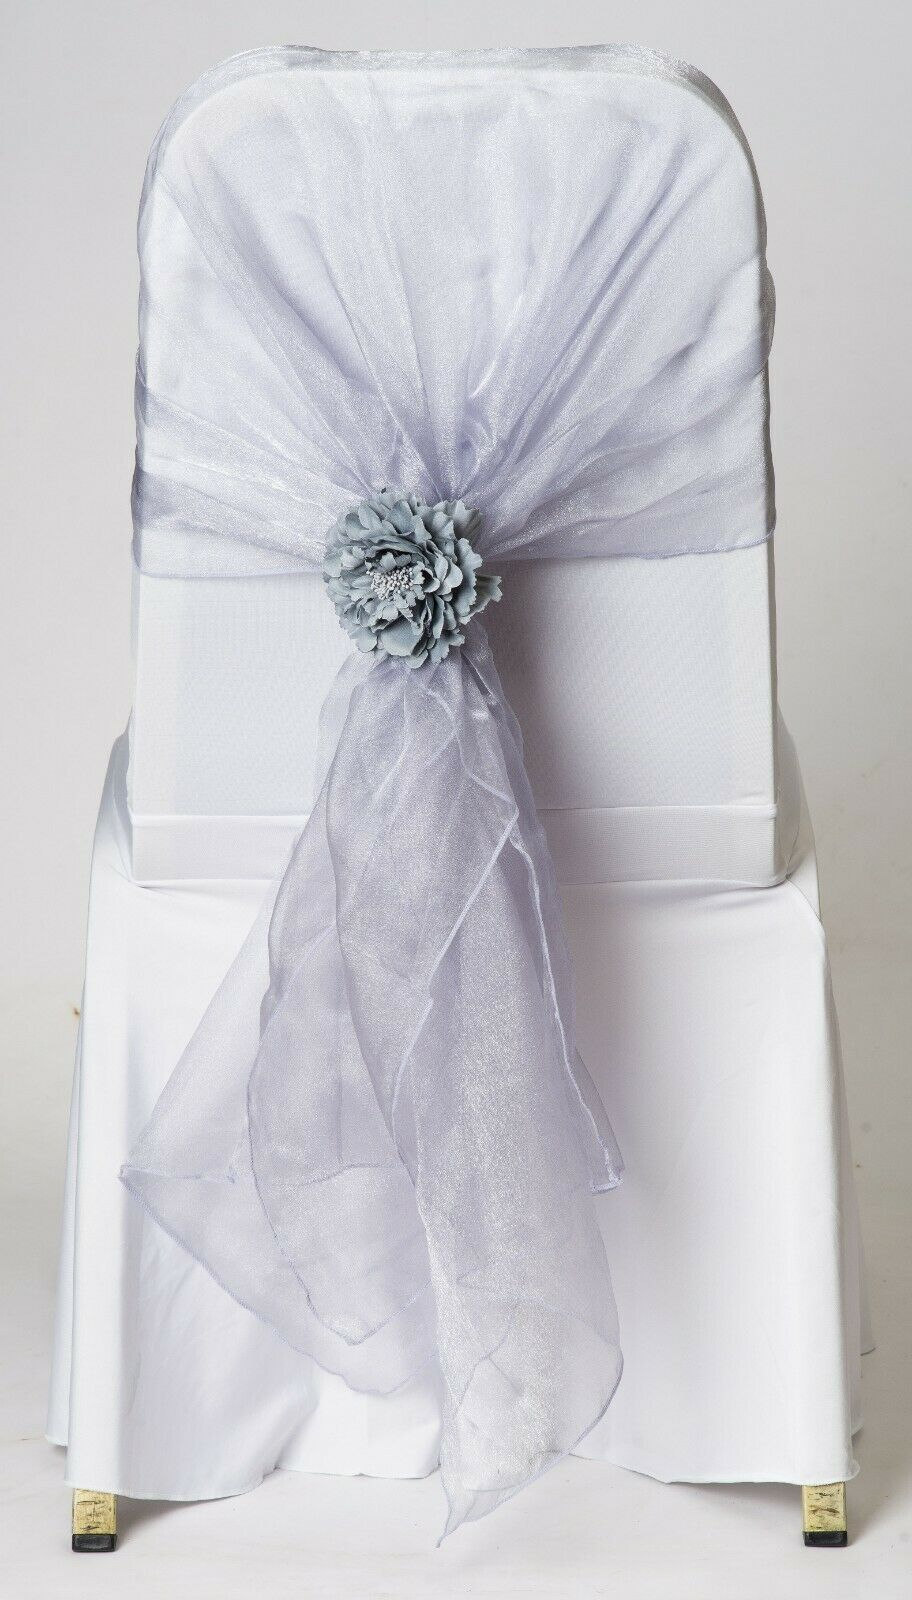 100 100 100 Lavender grau Mink Organza Chair Cover Hood Wrap Sash Bow Tie a83bed